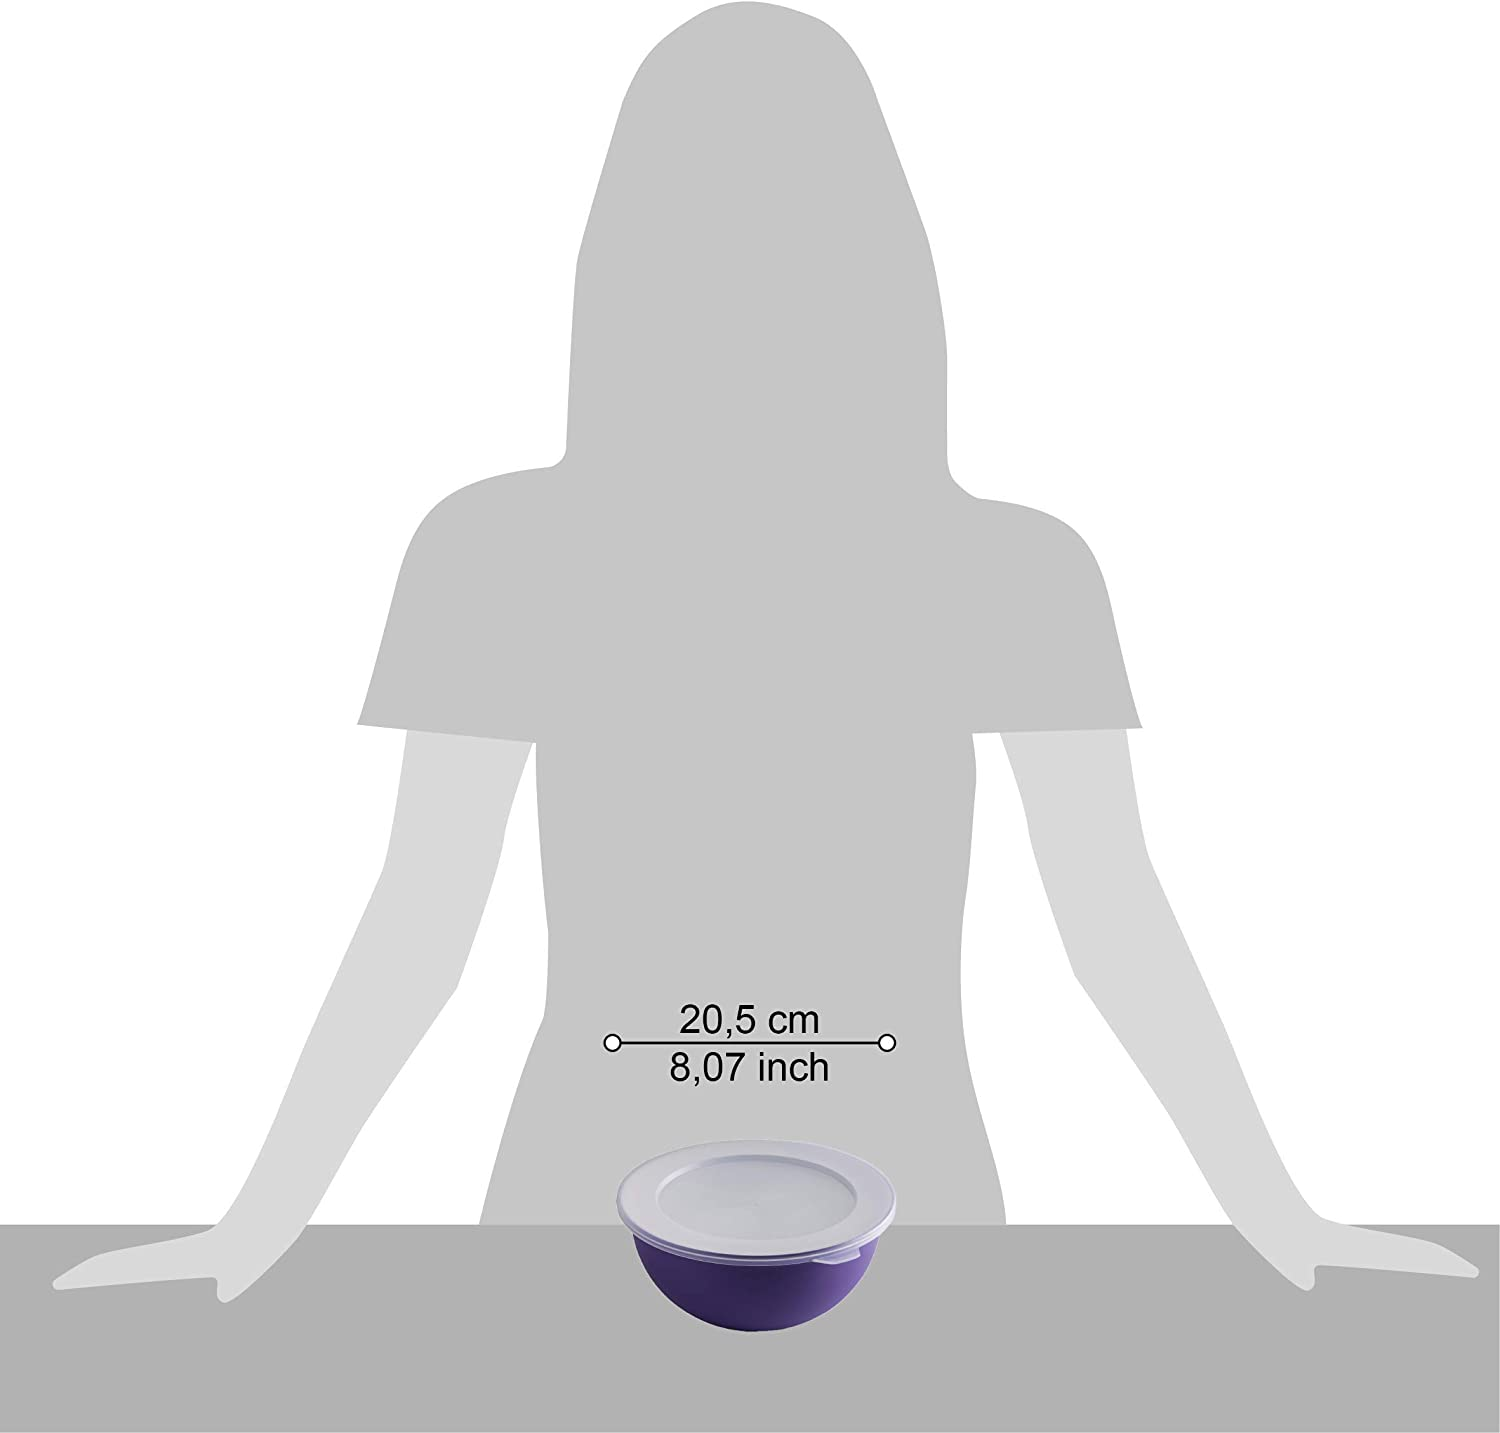 Omada Design lid 7.87 inch Diameter in Polypropylene and Antibacterial 52.79 fl oz Bowl Inside White and Outside Colored